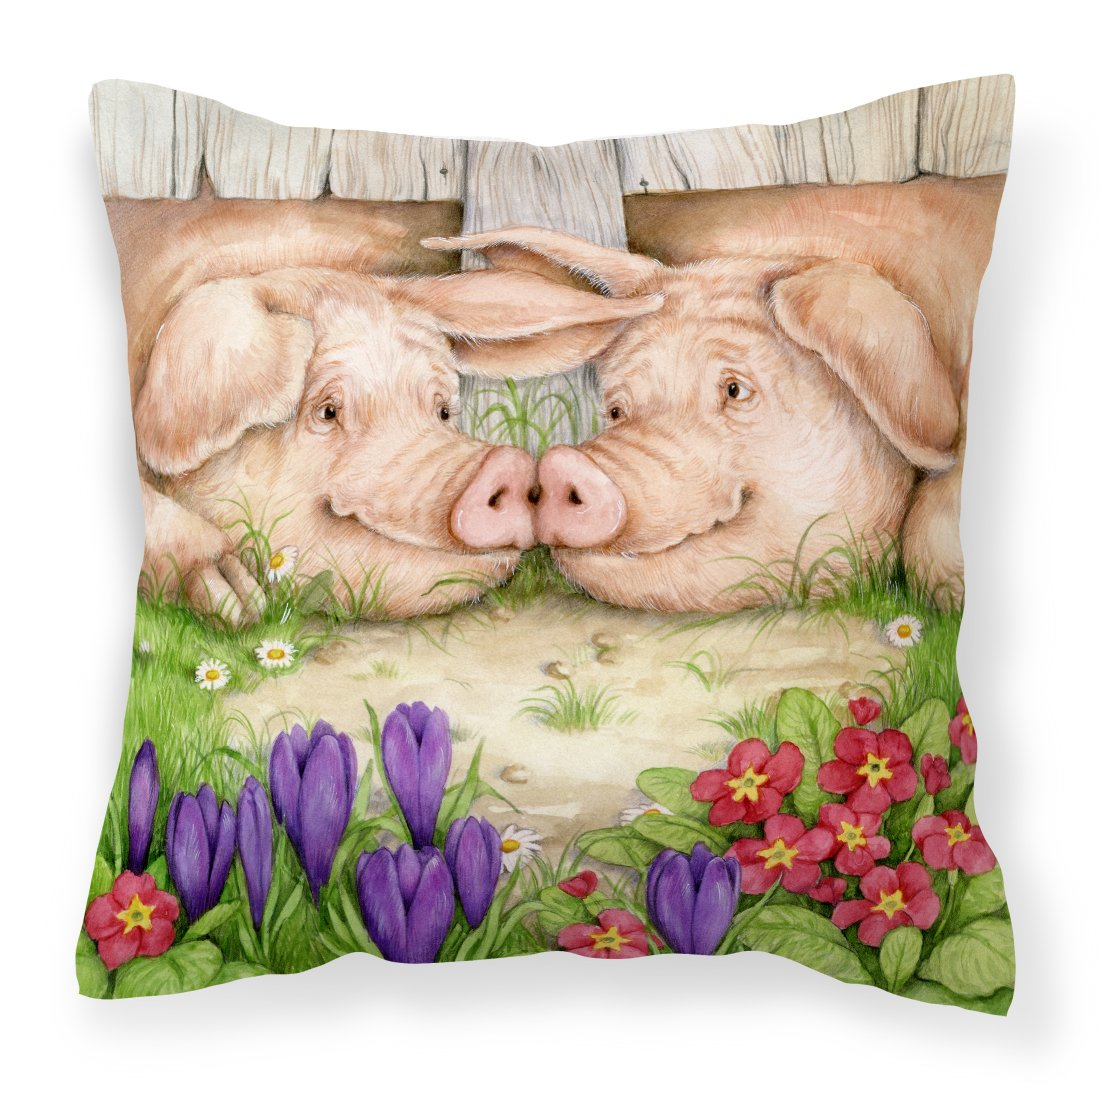 Pigs Nose To Nose by Debbie Cook Canvas Decorative Pillow by Caroline's Treasures